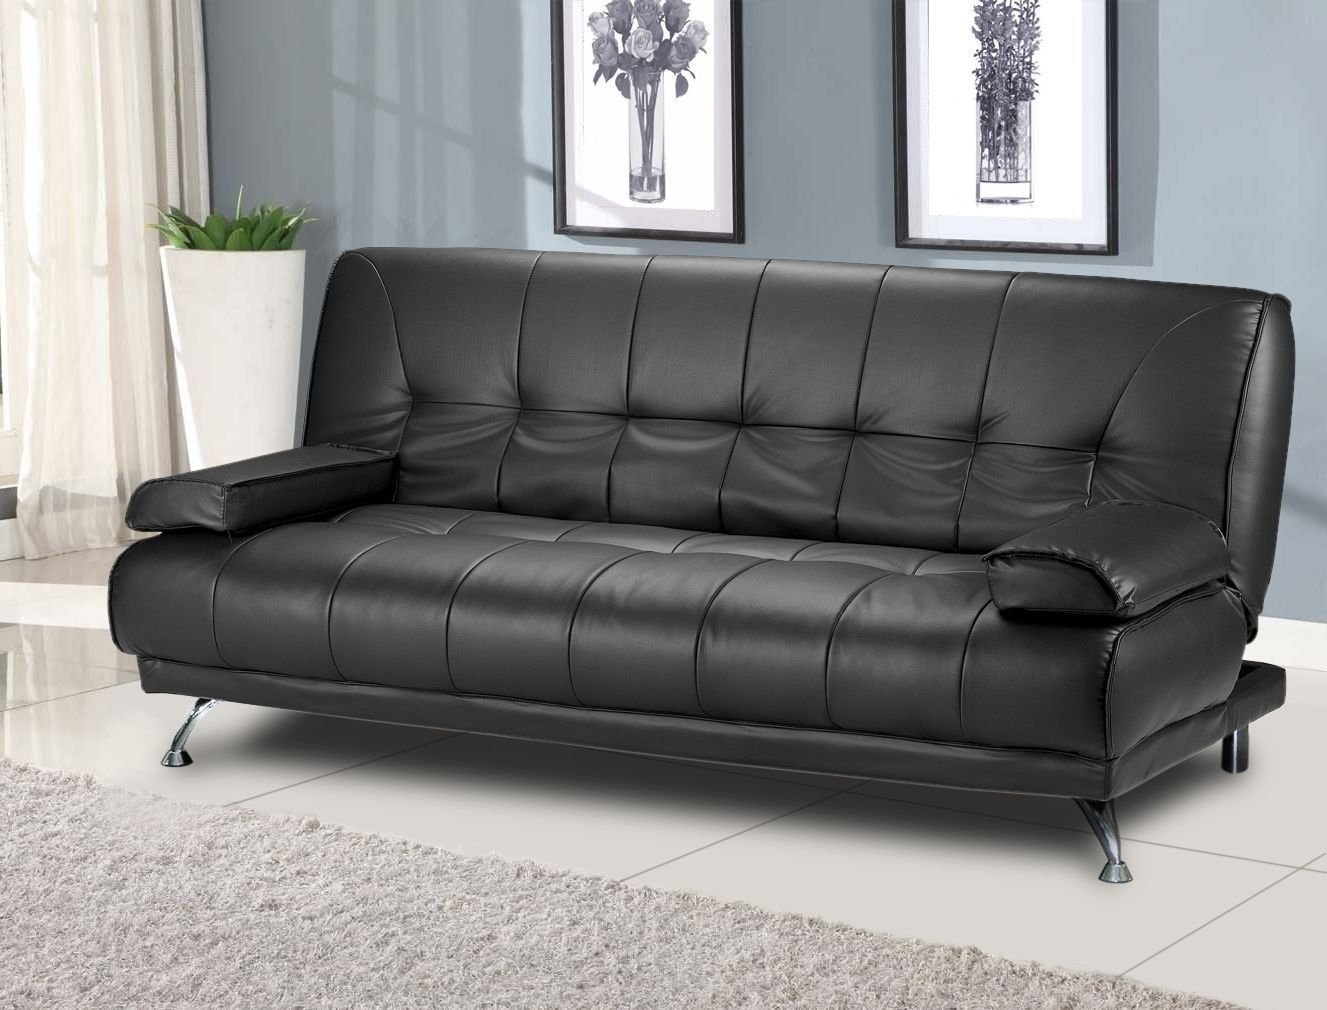 Milan Venice Sofa Bed in Black Faux Leather